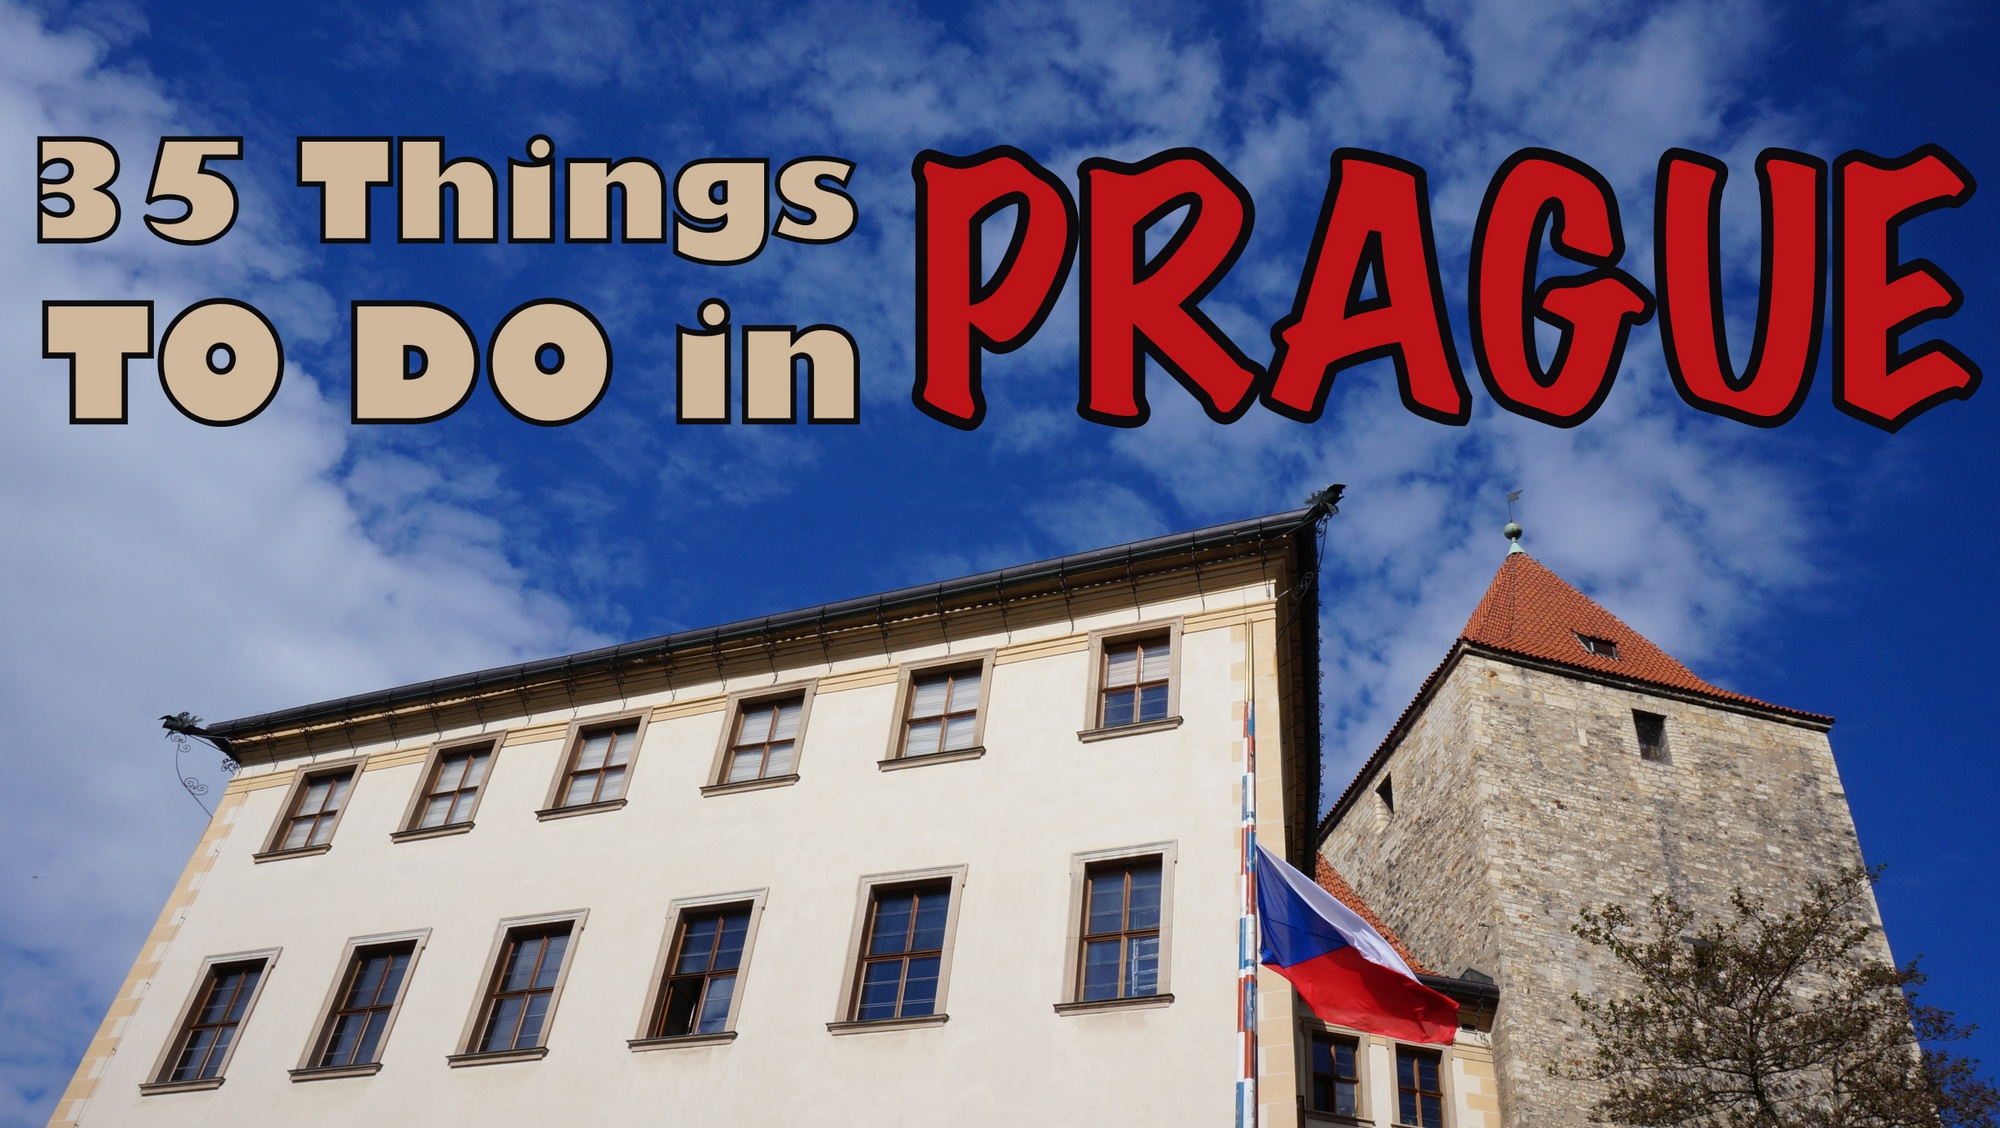 35 Things to do in Prague